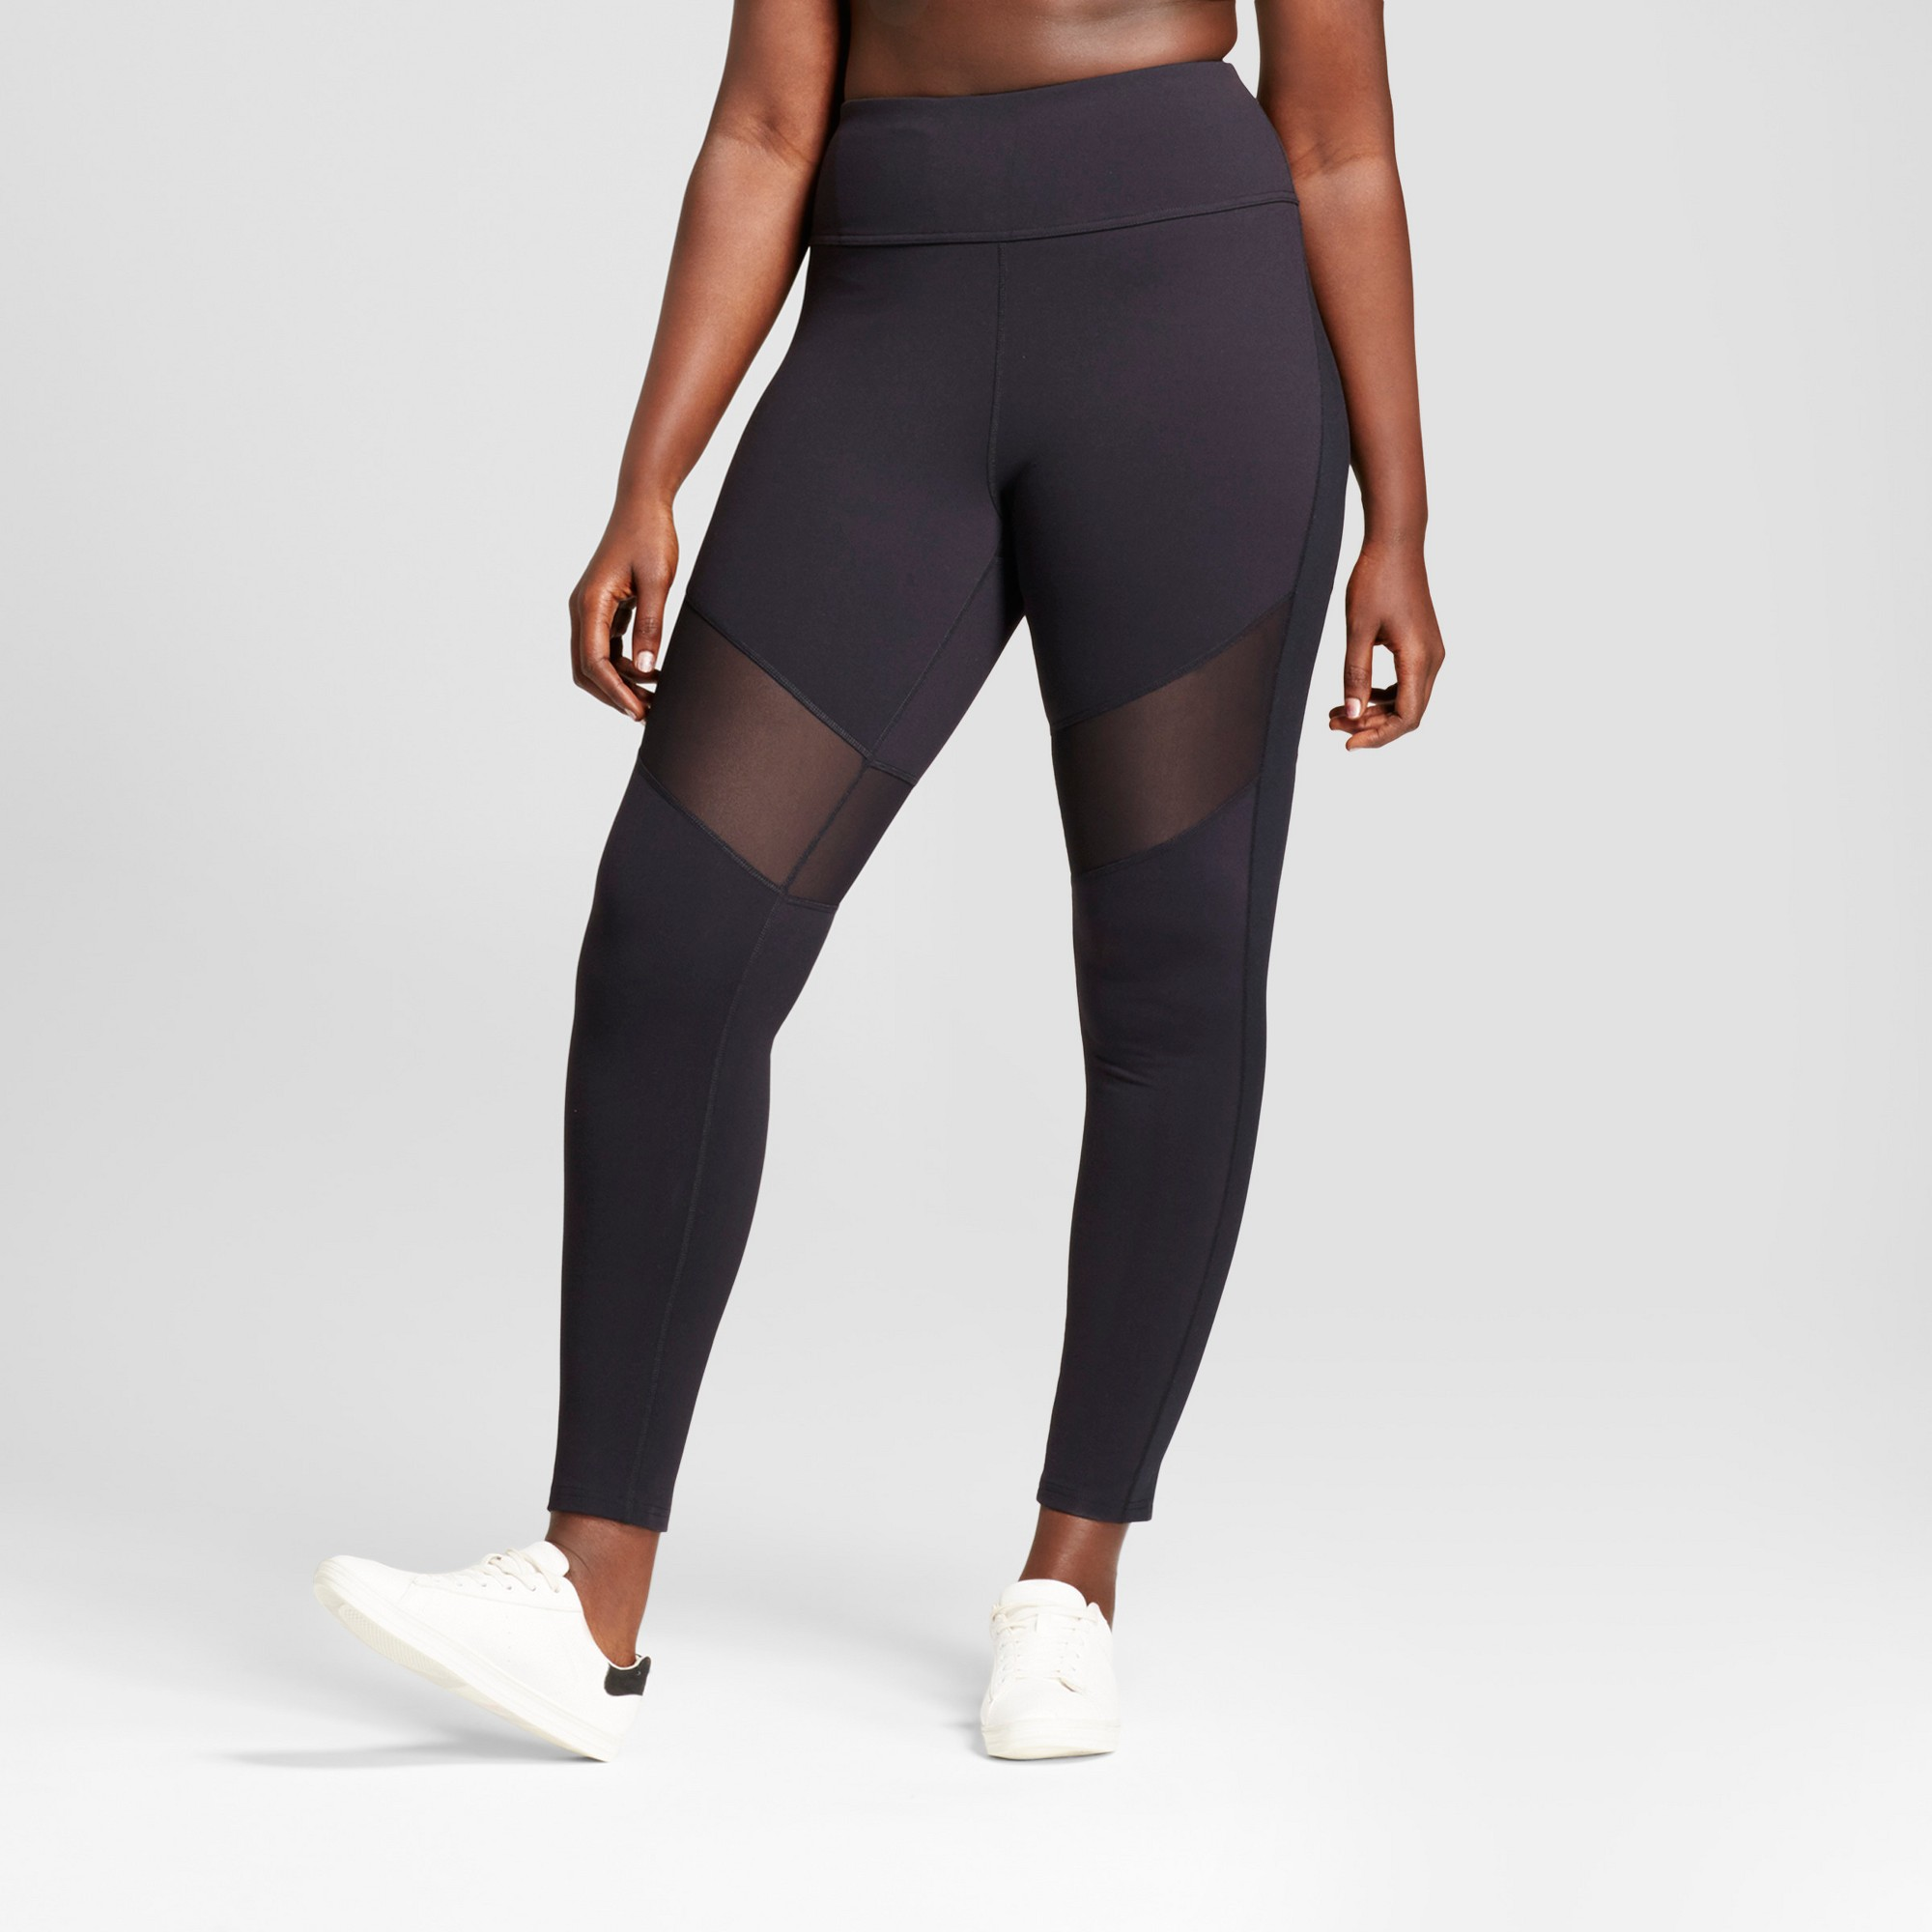 8a7035e9446 Plus Size Women s Plus Premium High Waist Mesh Leggings - JoyLab Black 1X